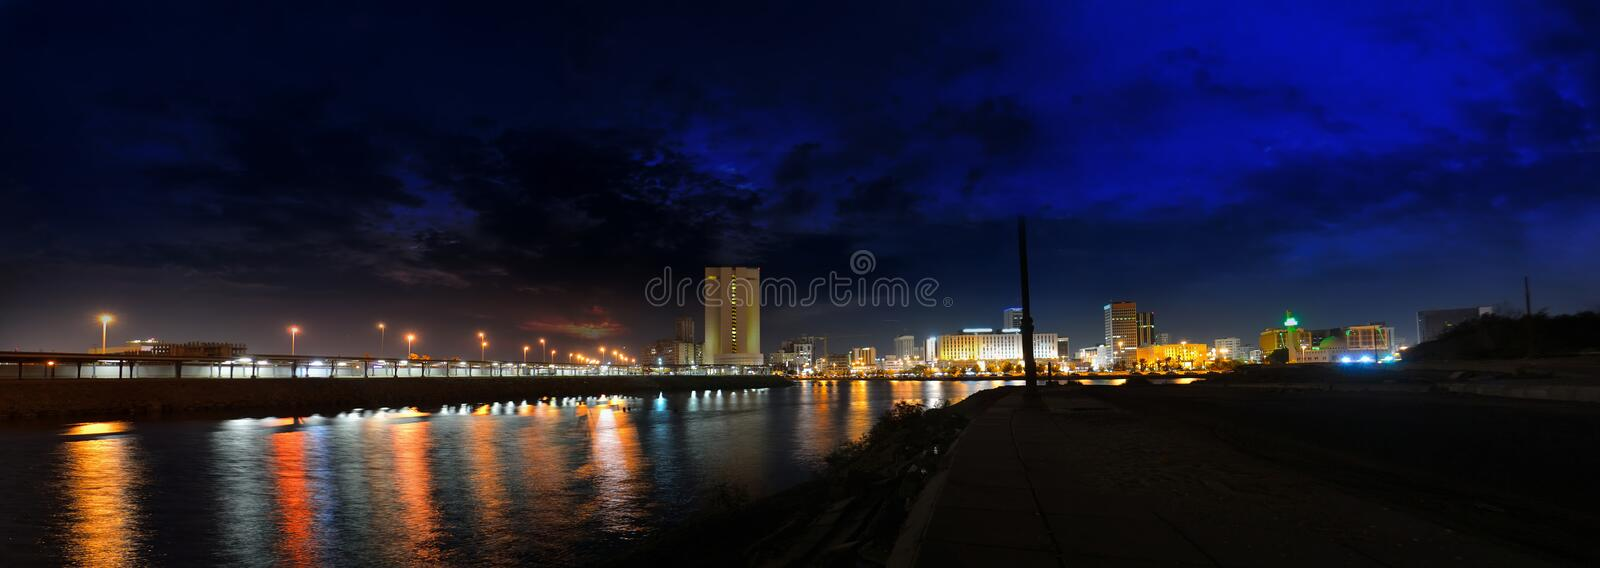 COMMERCIAL CENTER OF JEDDAH royalty free stock image